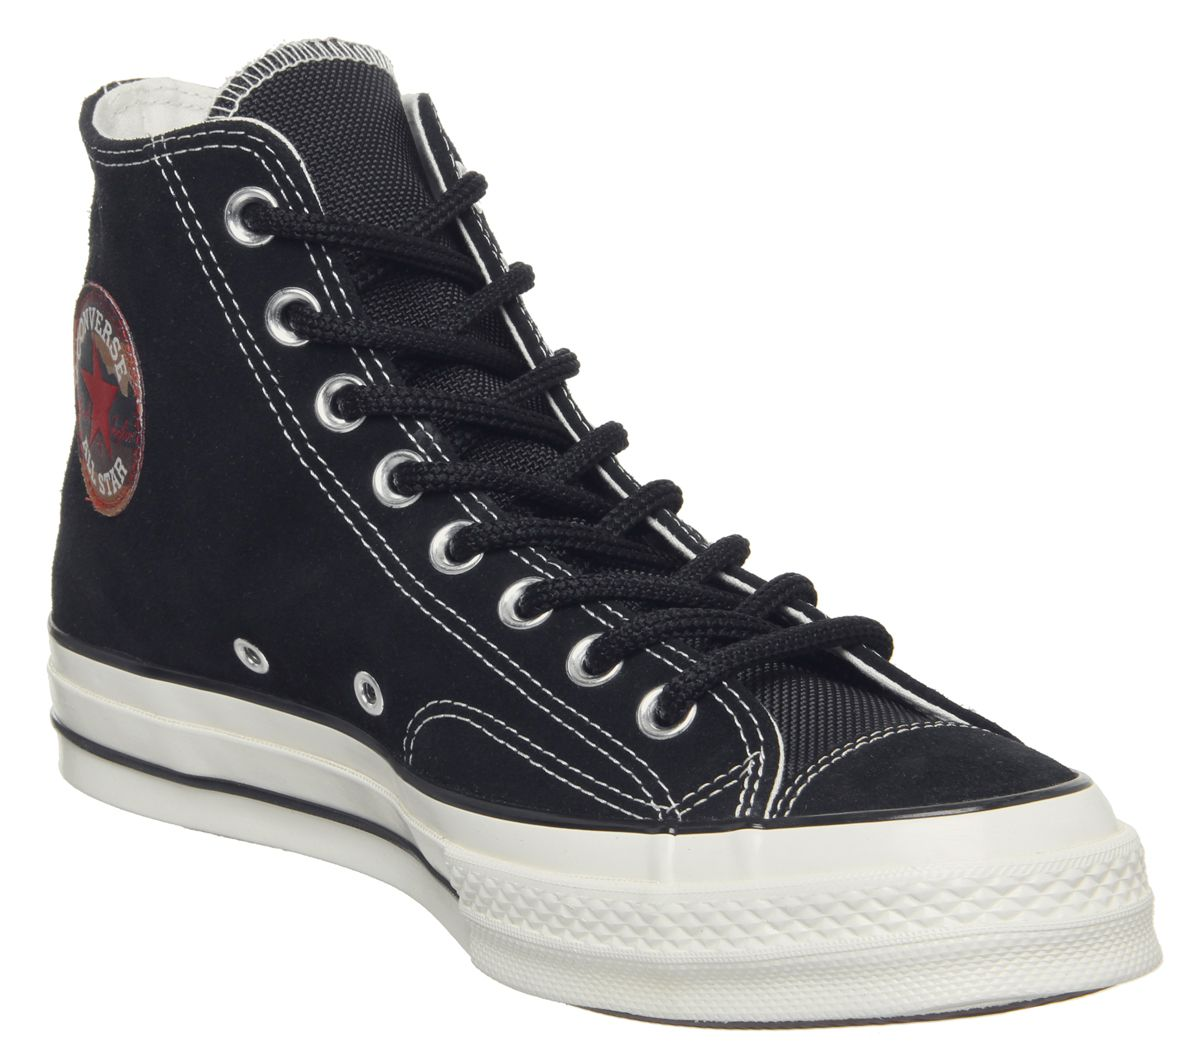 a7c17949aaa61b Converse All Star Hi 70 s Trainers Black Egret Patch - Unisex Sports